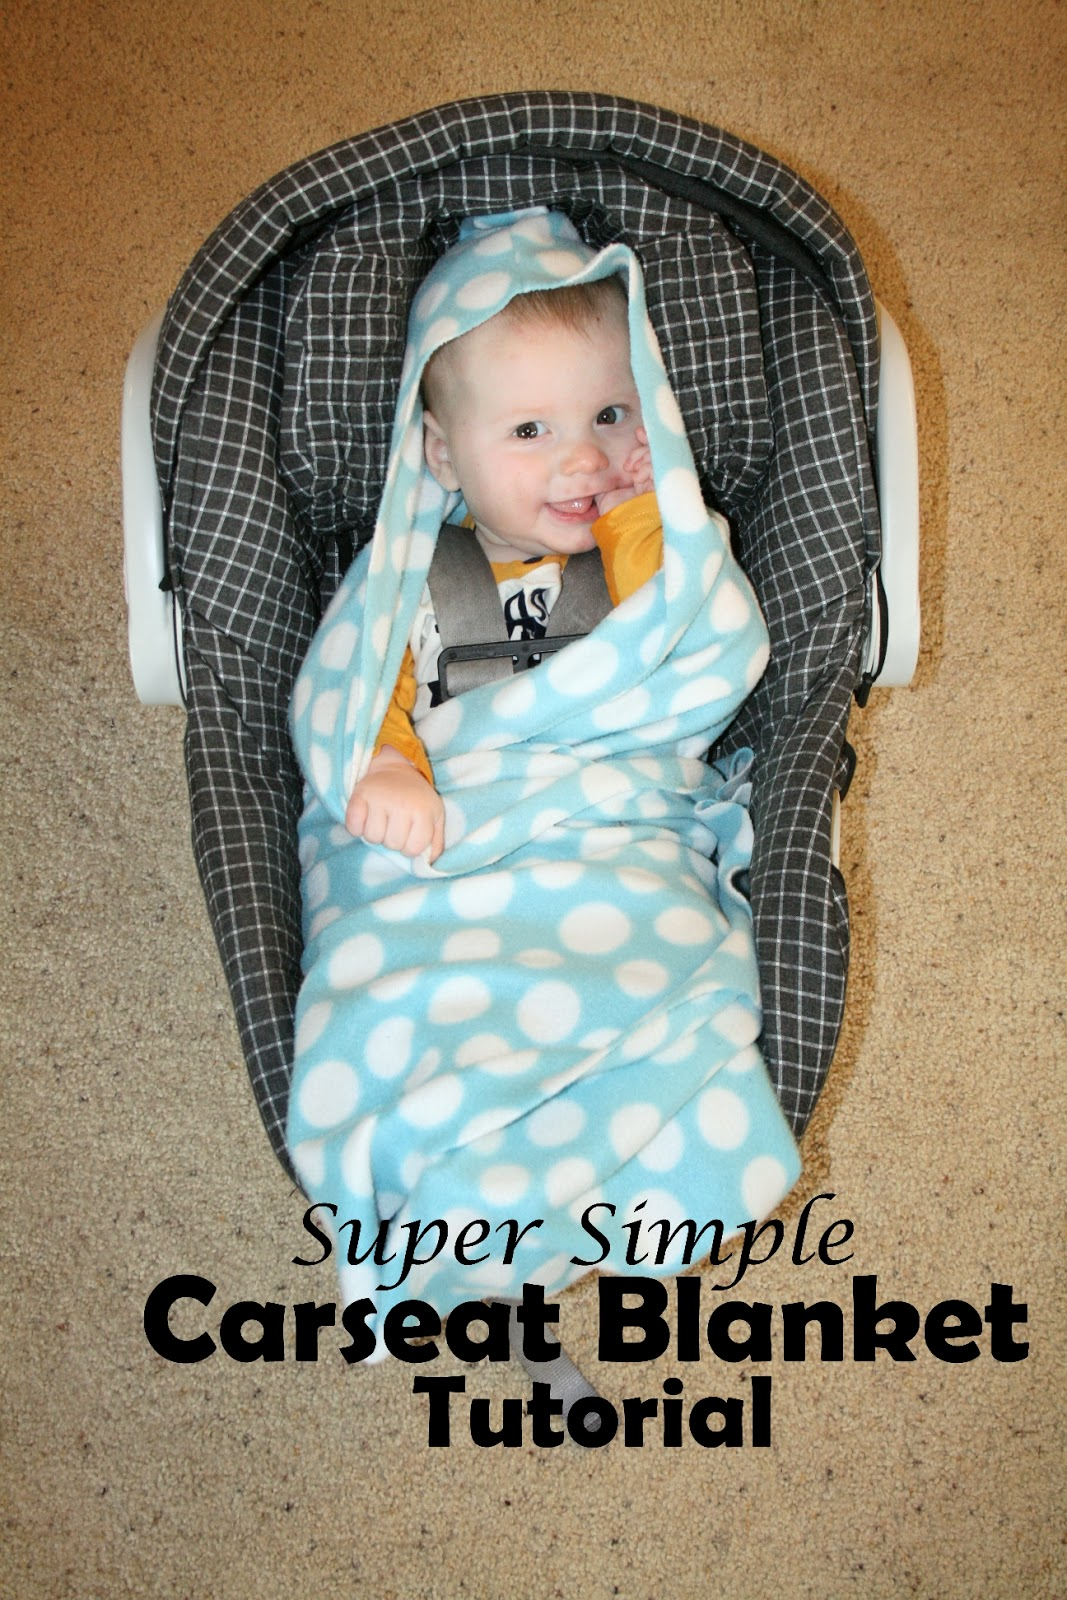 Scroll Down To See The Very Easy Car Seat Blanket Tutorial Below Here Is My Little Guy All Bundled Up In His